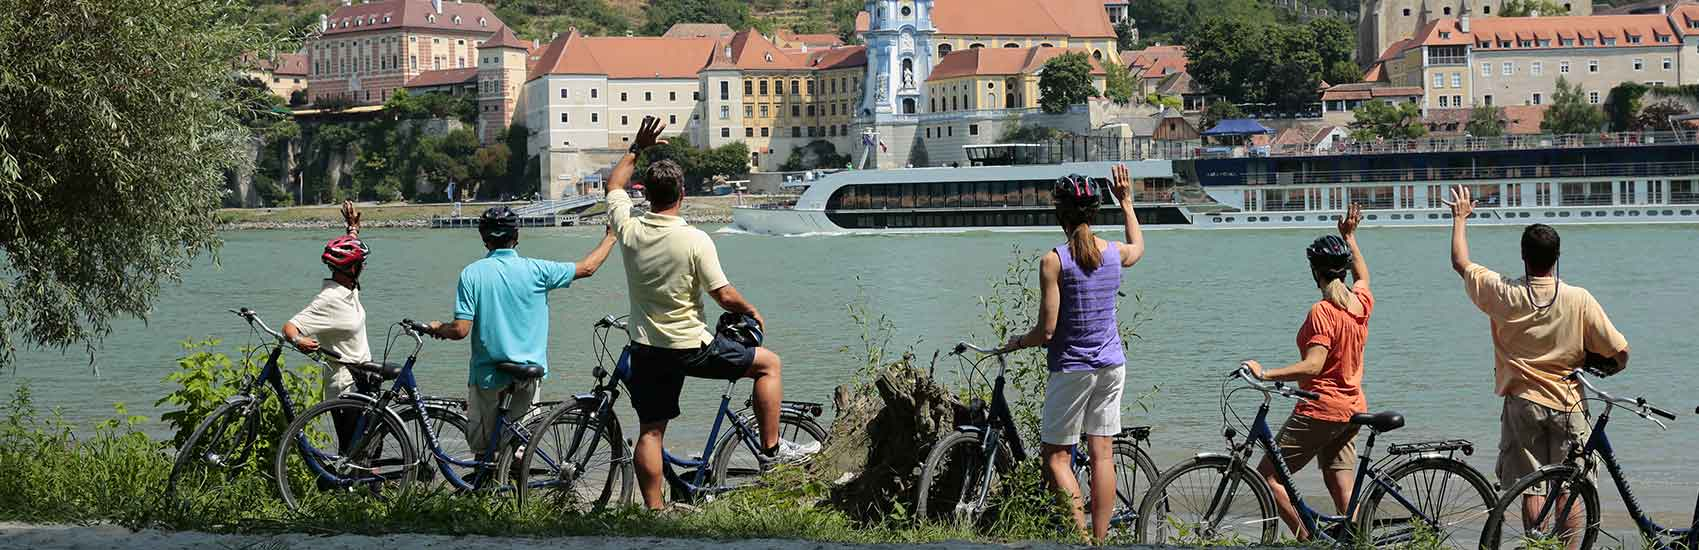 Exclusive Virtuoso Offer with AmaWaterways 1